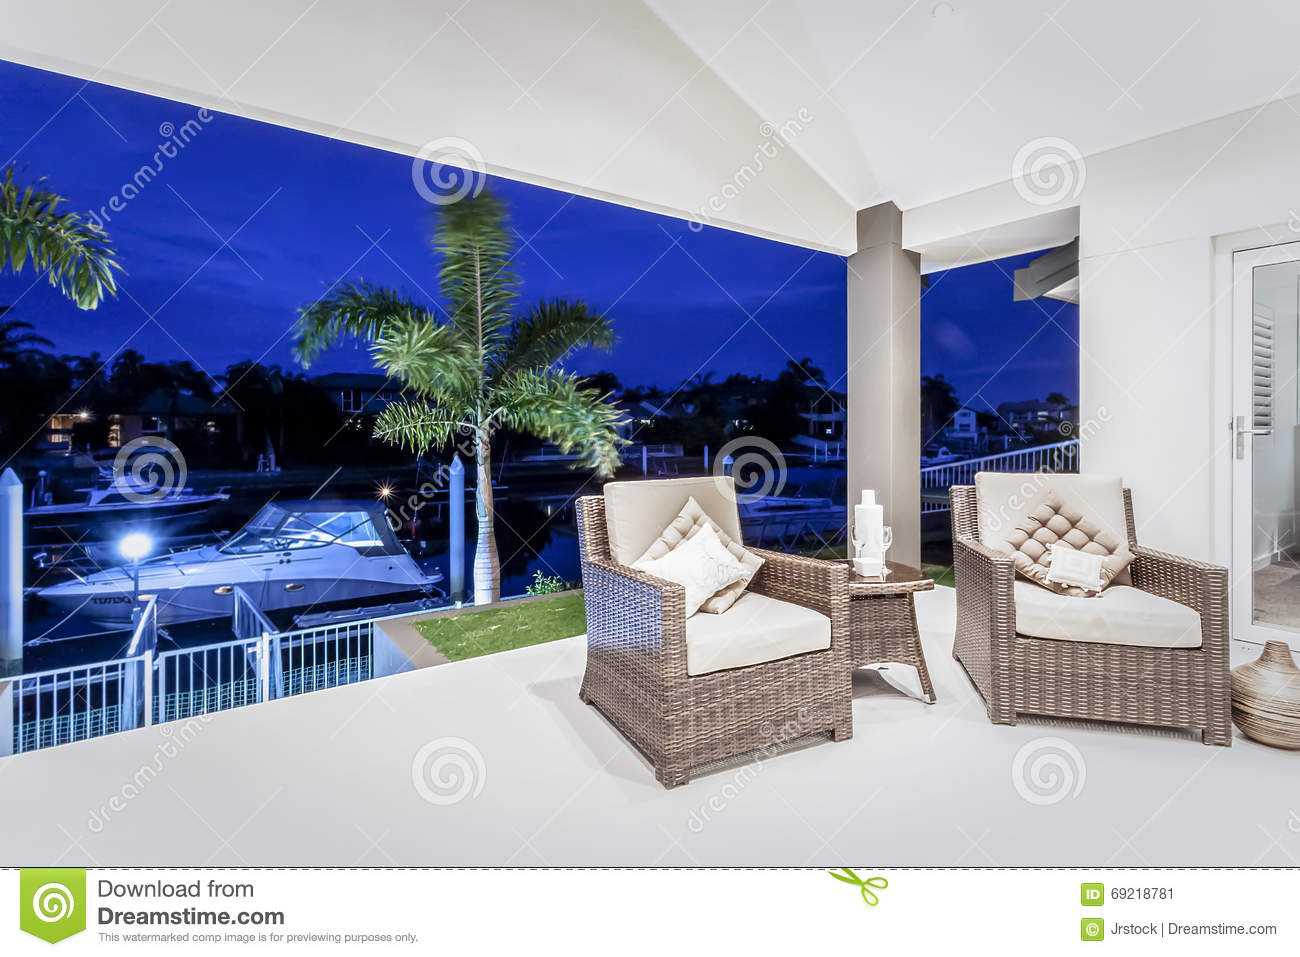 Patio Moderne Outside Patio Area Of A Modern House Or Hotel Stock Image Image